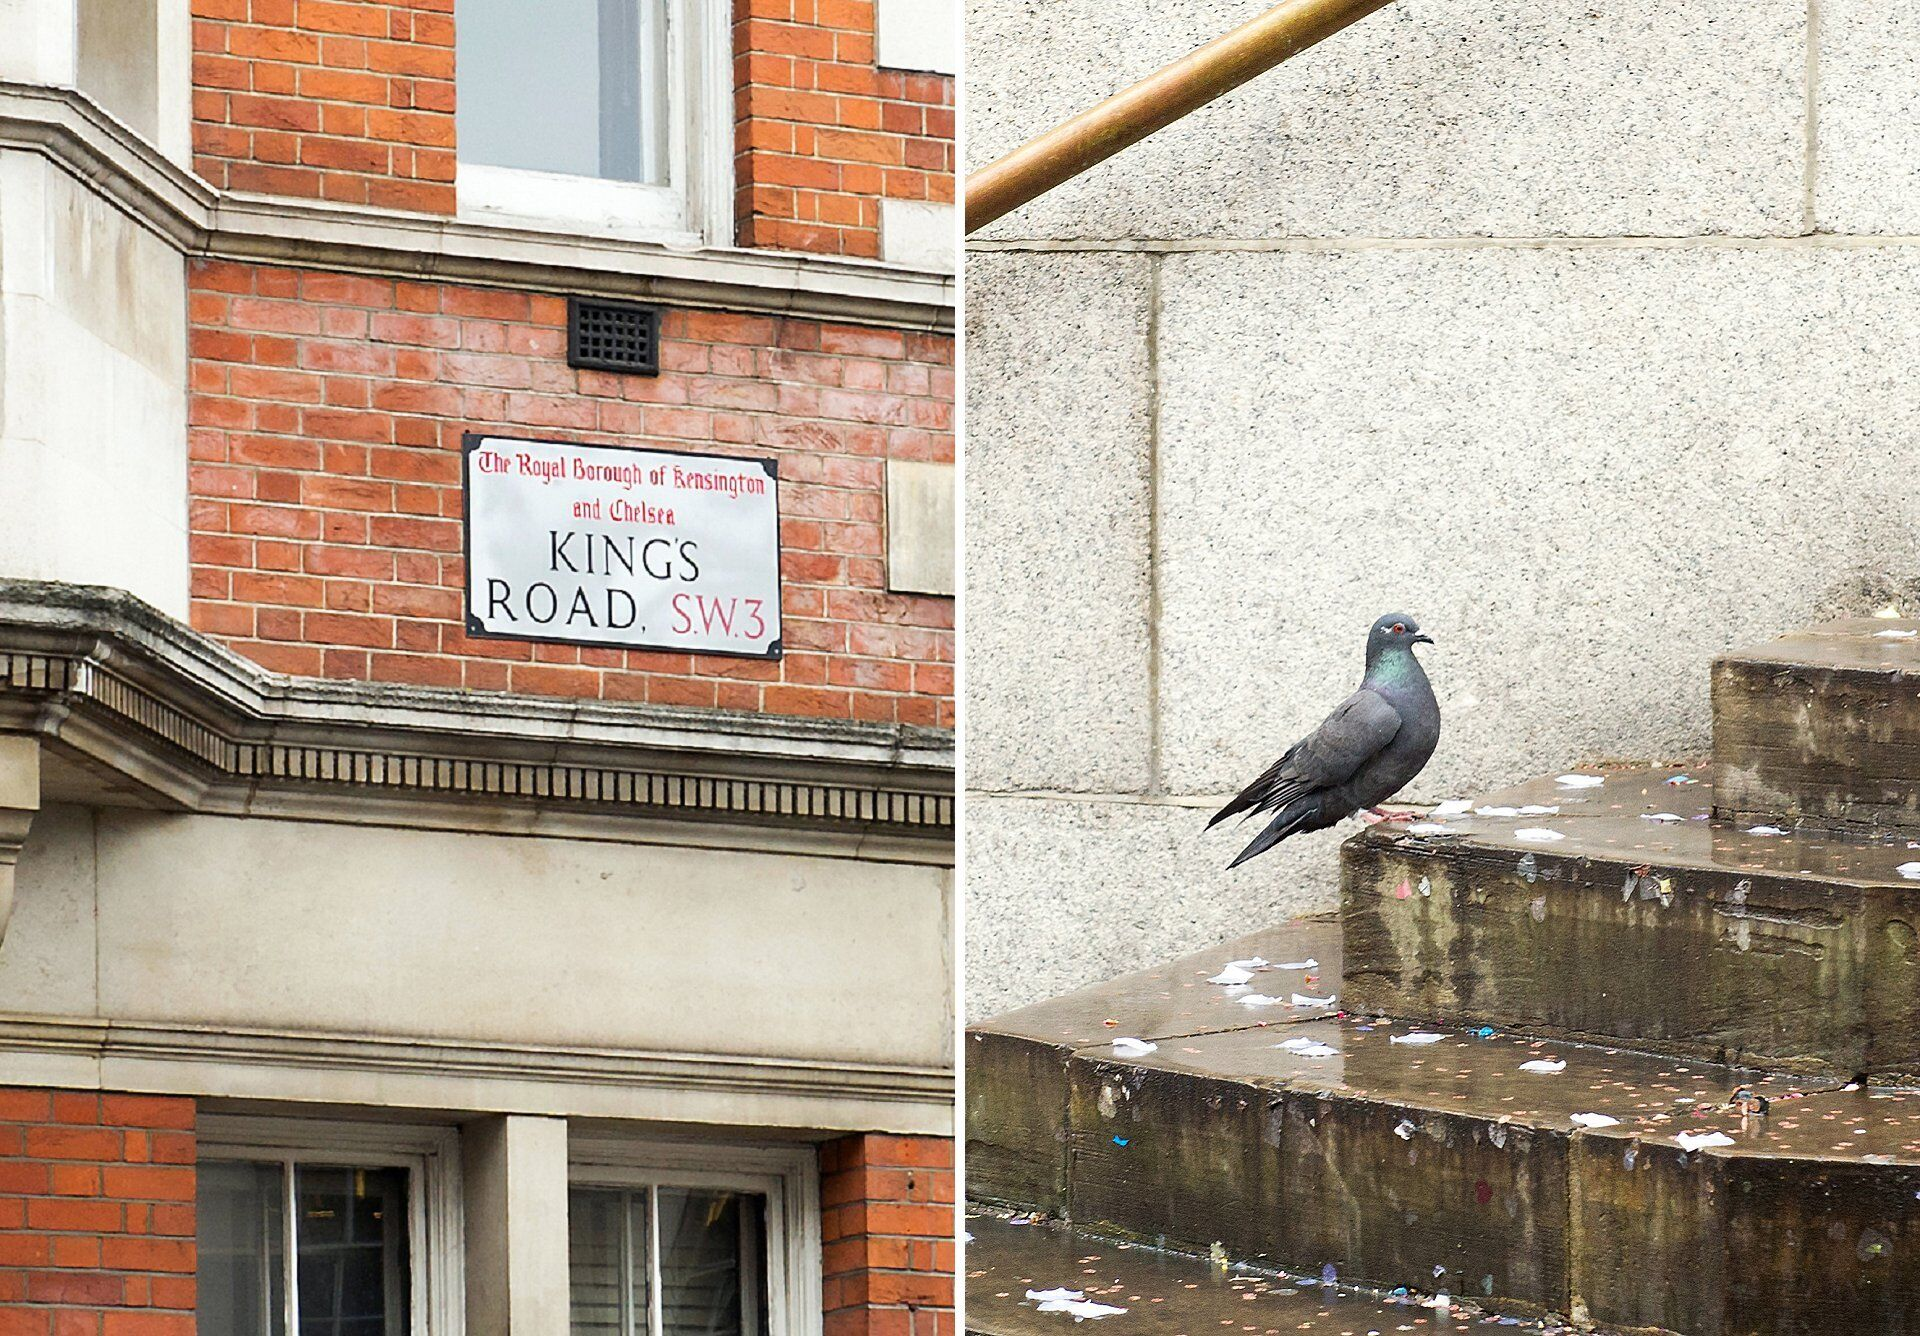 chelsea old town hall rainy wedding on kings road with pigeon